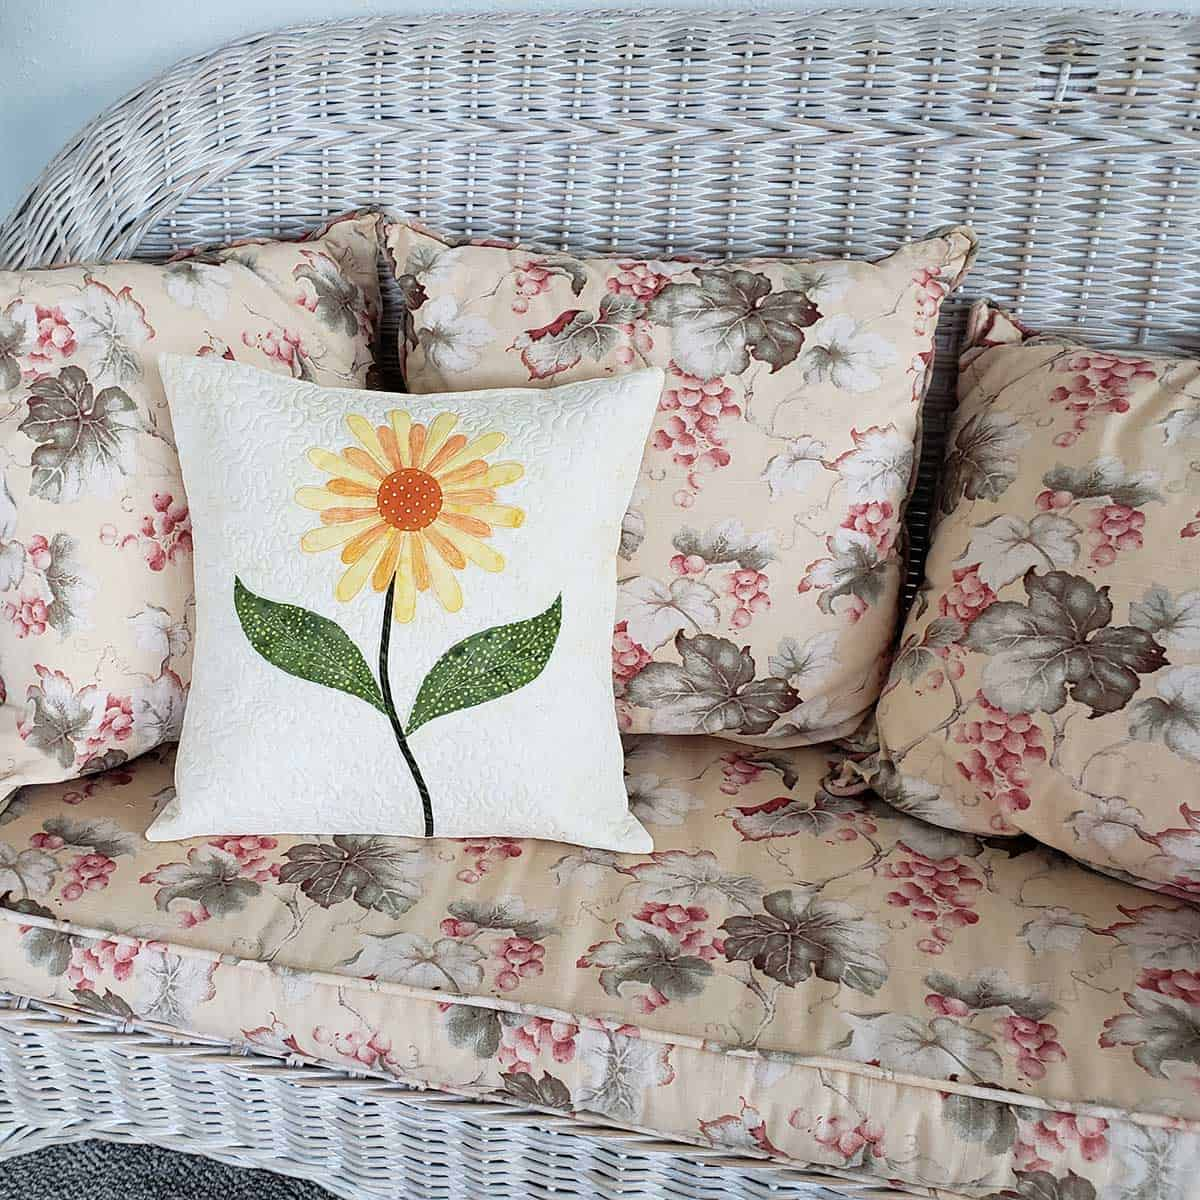 Daisy pillow on the chaise lounge